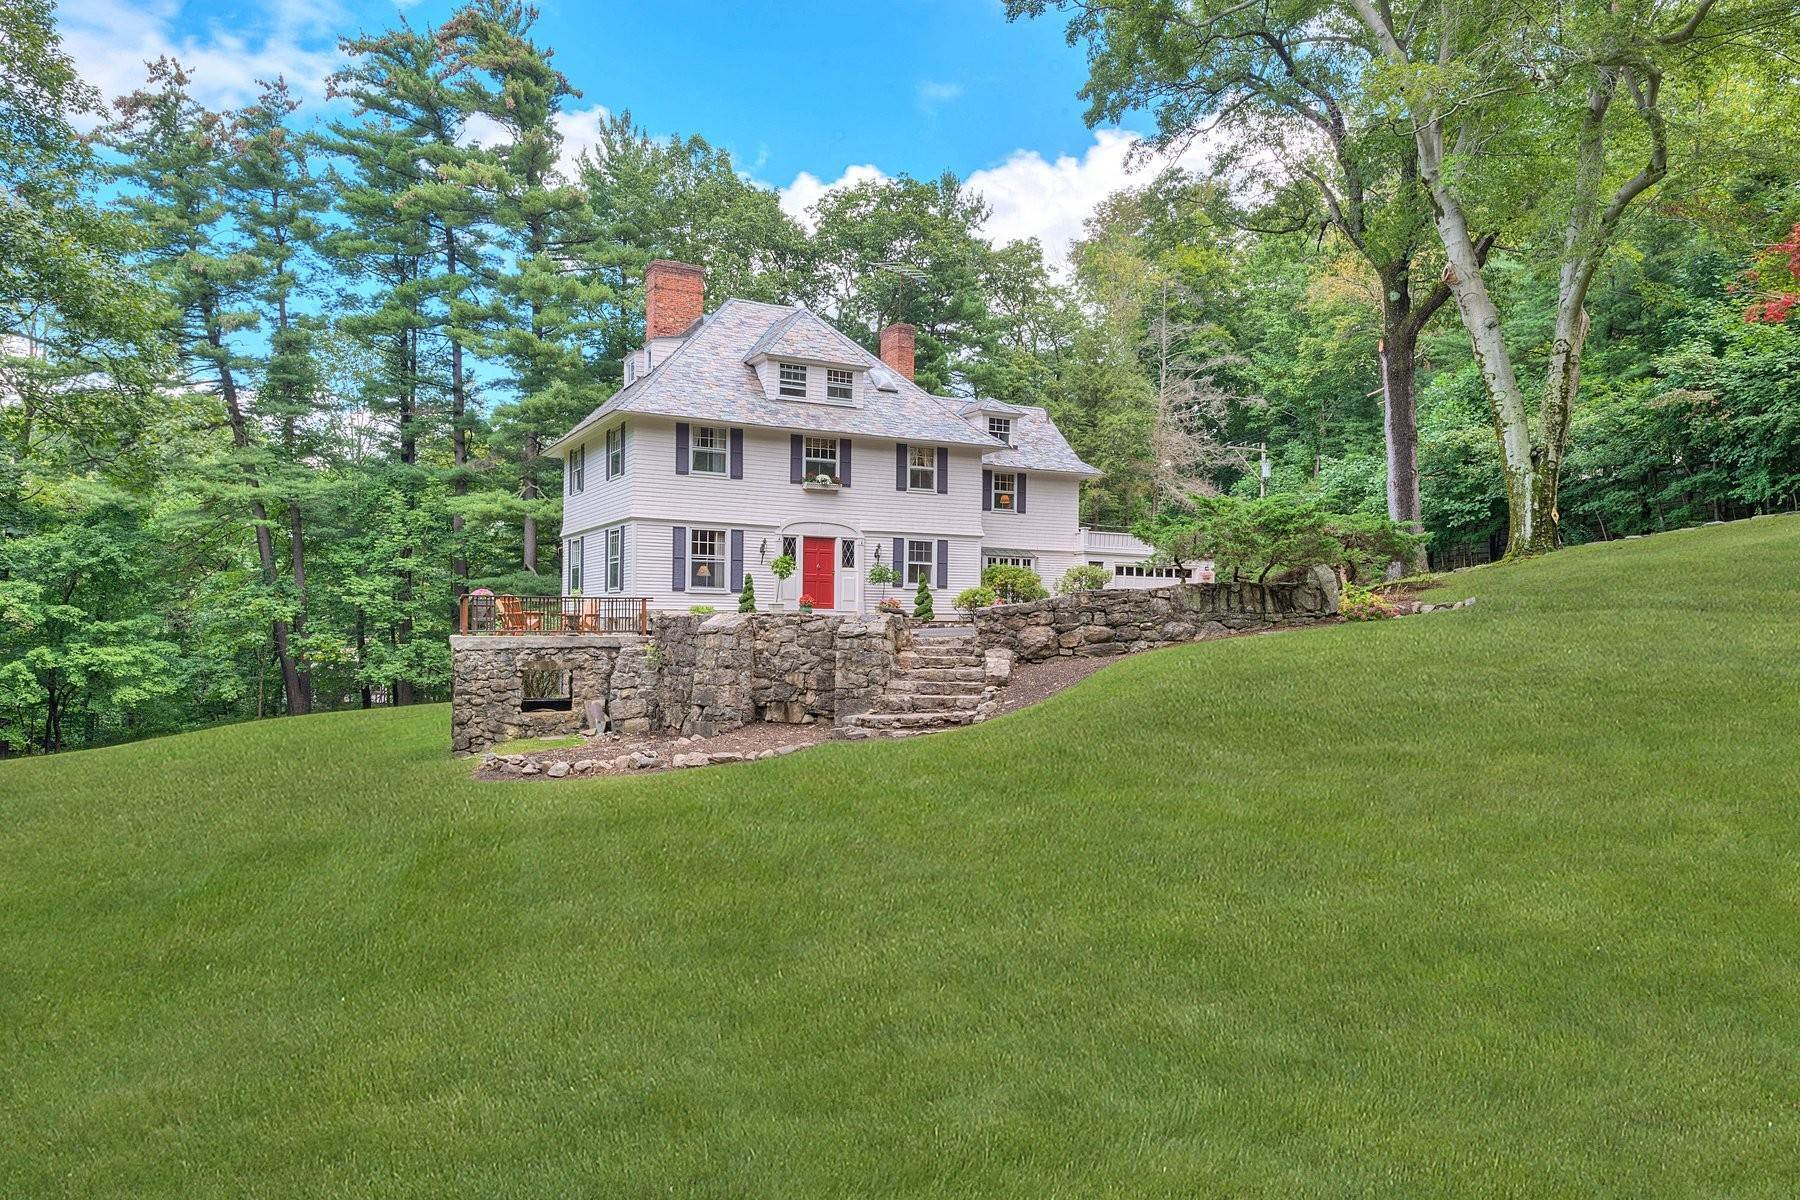 3. Single Family Homes for Sale at 'Horace Waldo Cottage' 160 Continental Road Tuxedo Park, New York 10987 United States